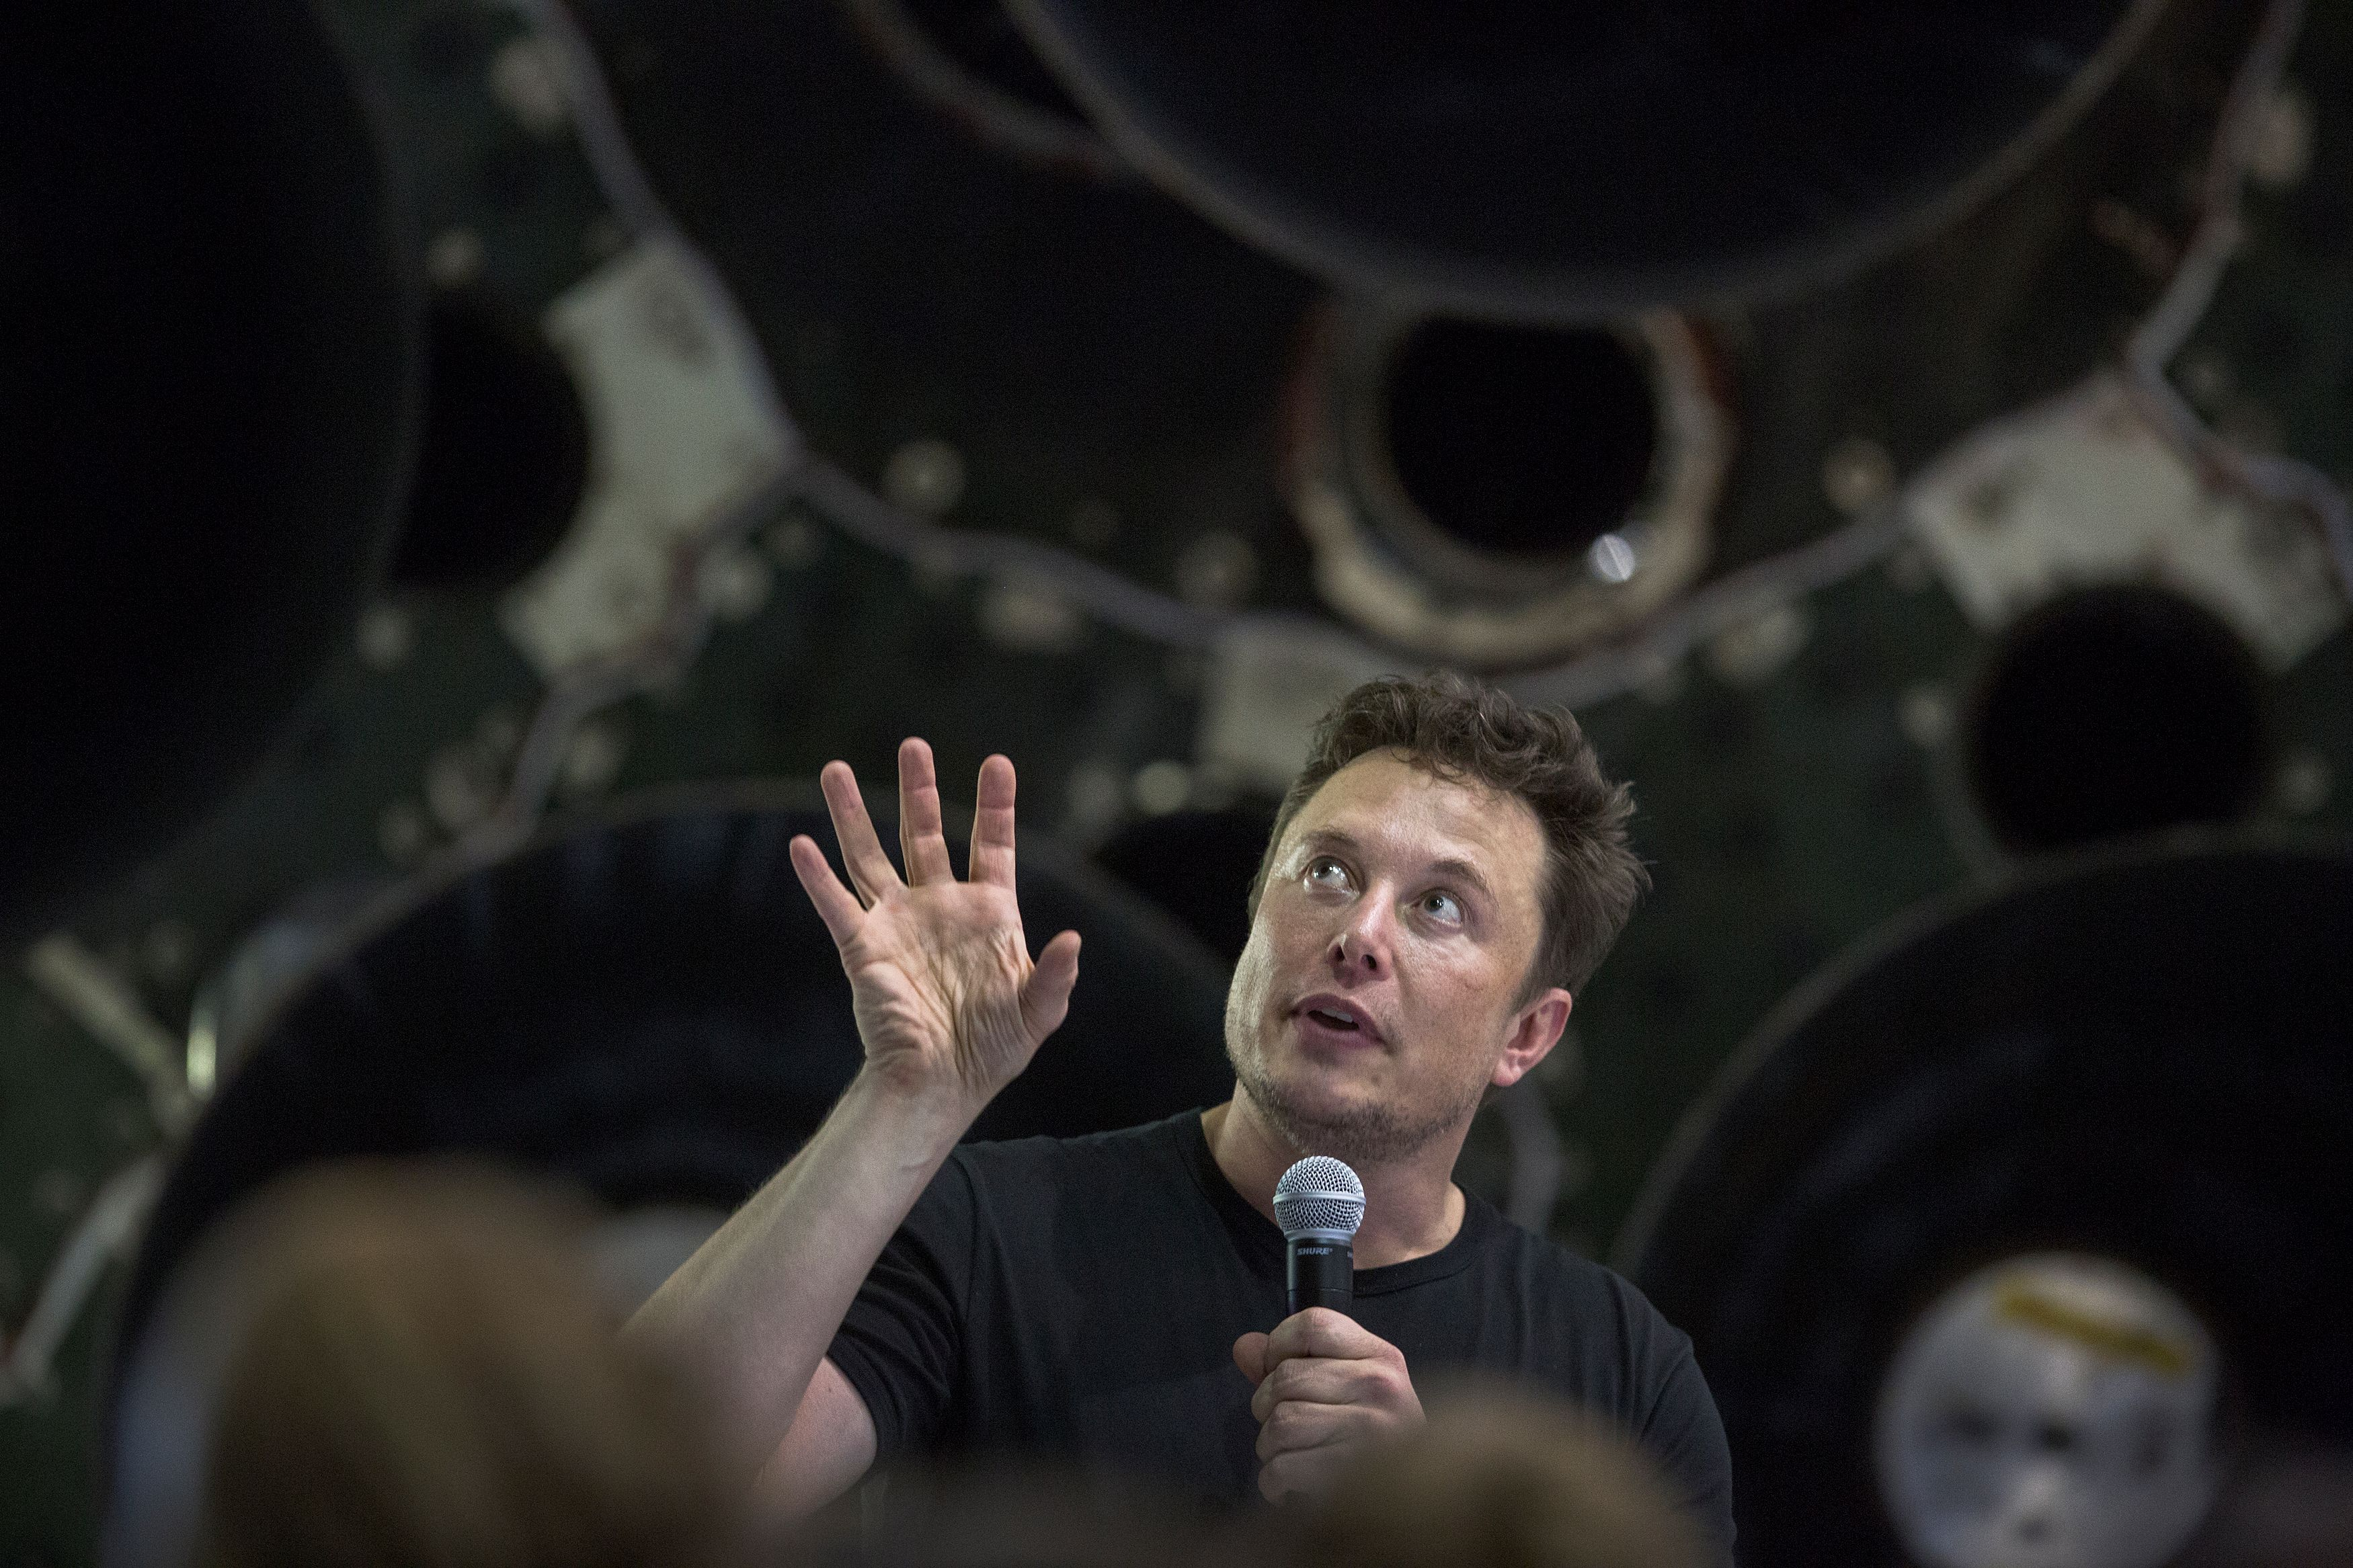 Elon Musk speaks near a Falcon 9 rocket at the SpaceX headquarters and rocket factory on Sept. 17, 2018 in Hawthorne, California.